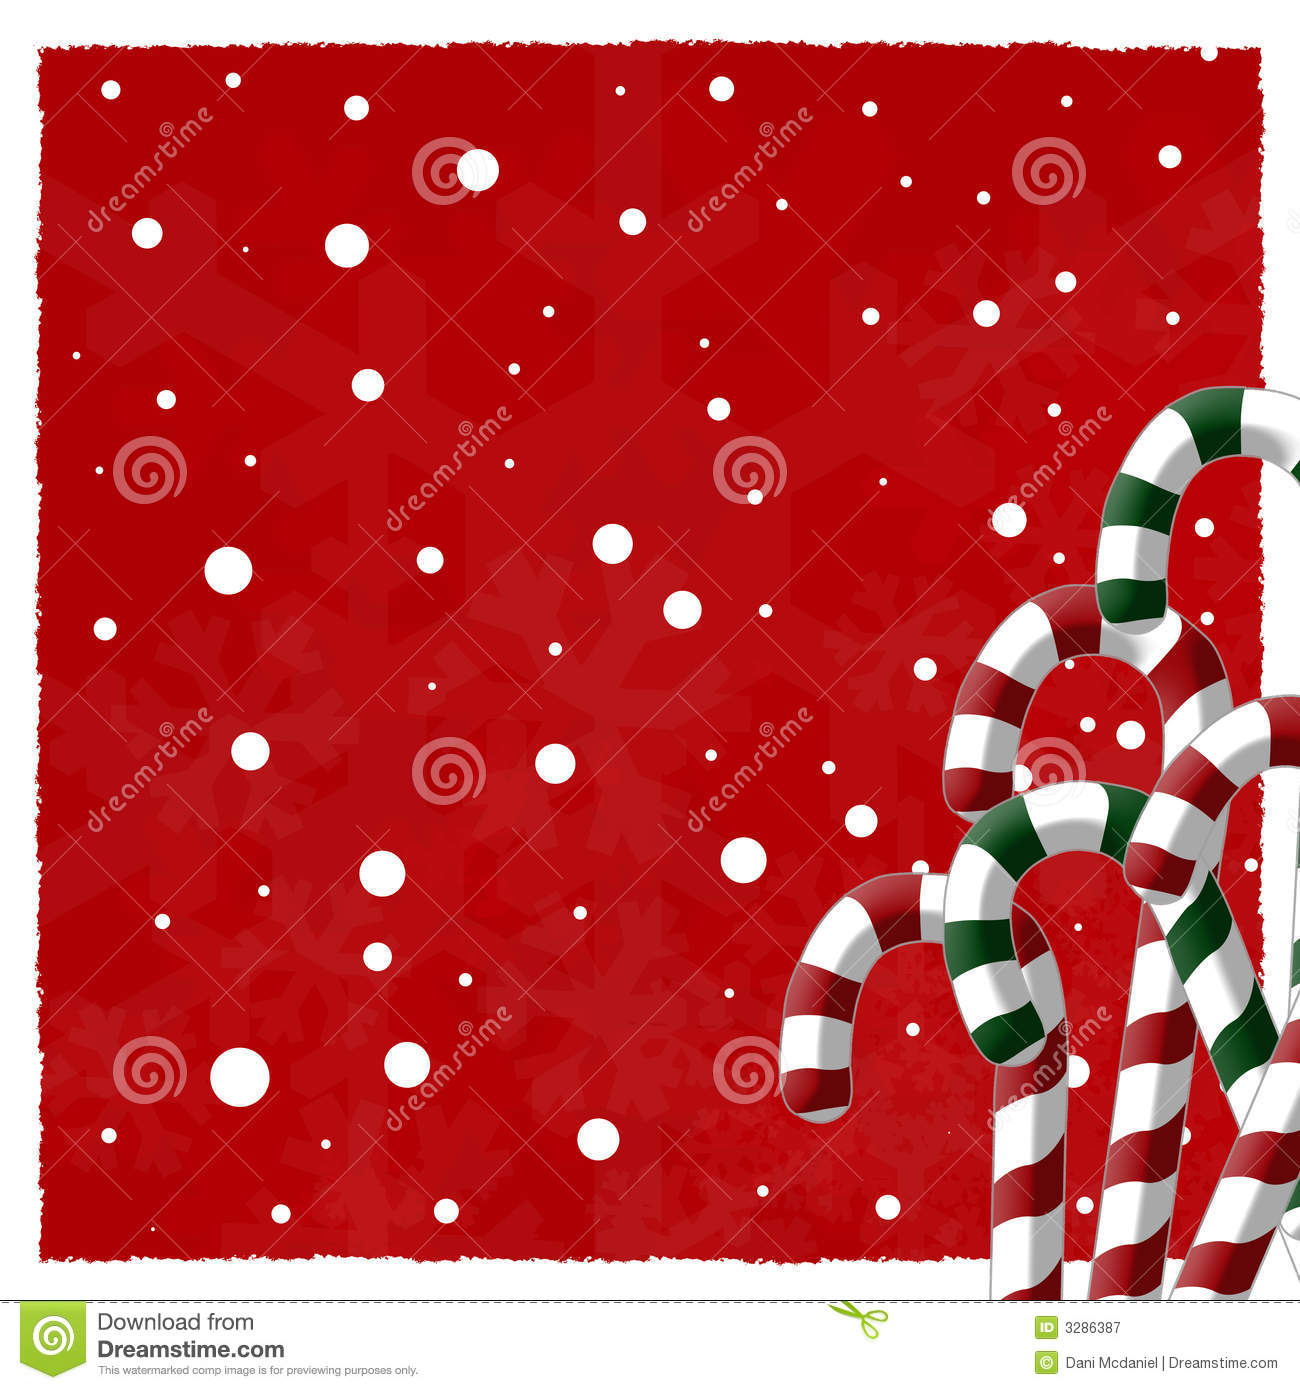 Candy Cane Background Royalty Free Stock Photography - Image: 3286387